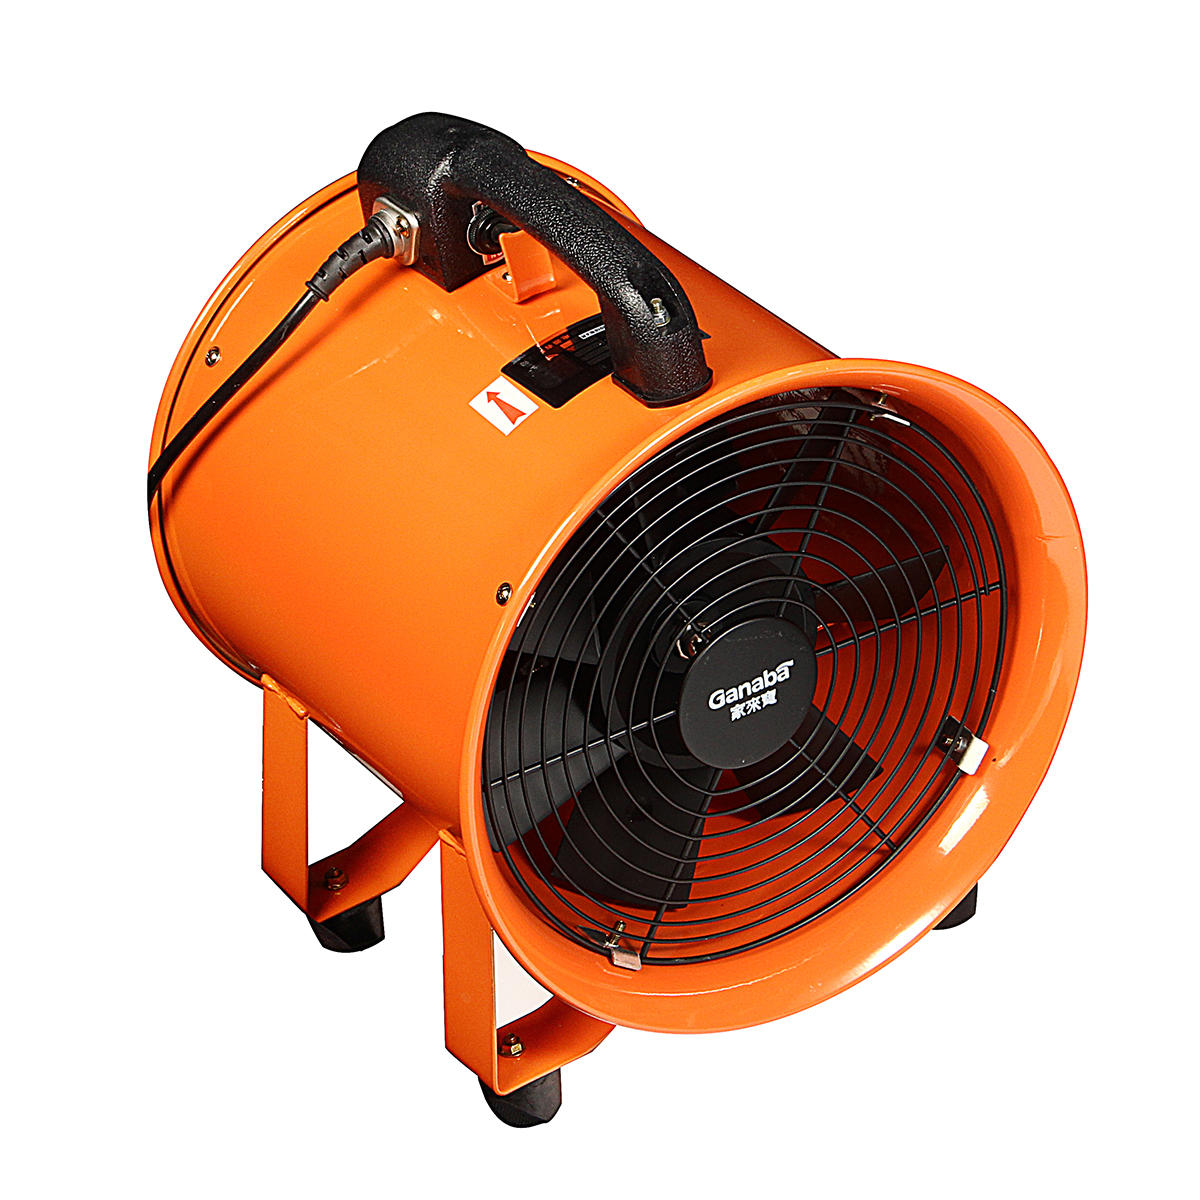 Portable Extractor Fan 8 Portable Ventilator Axial Ducting Blower Industrial Workshop Extractor Fan